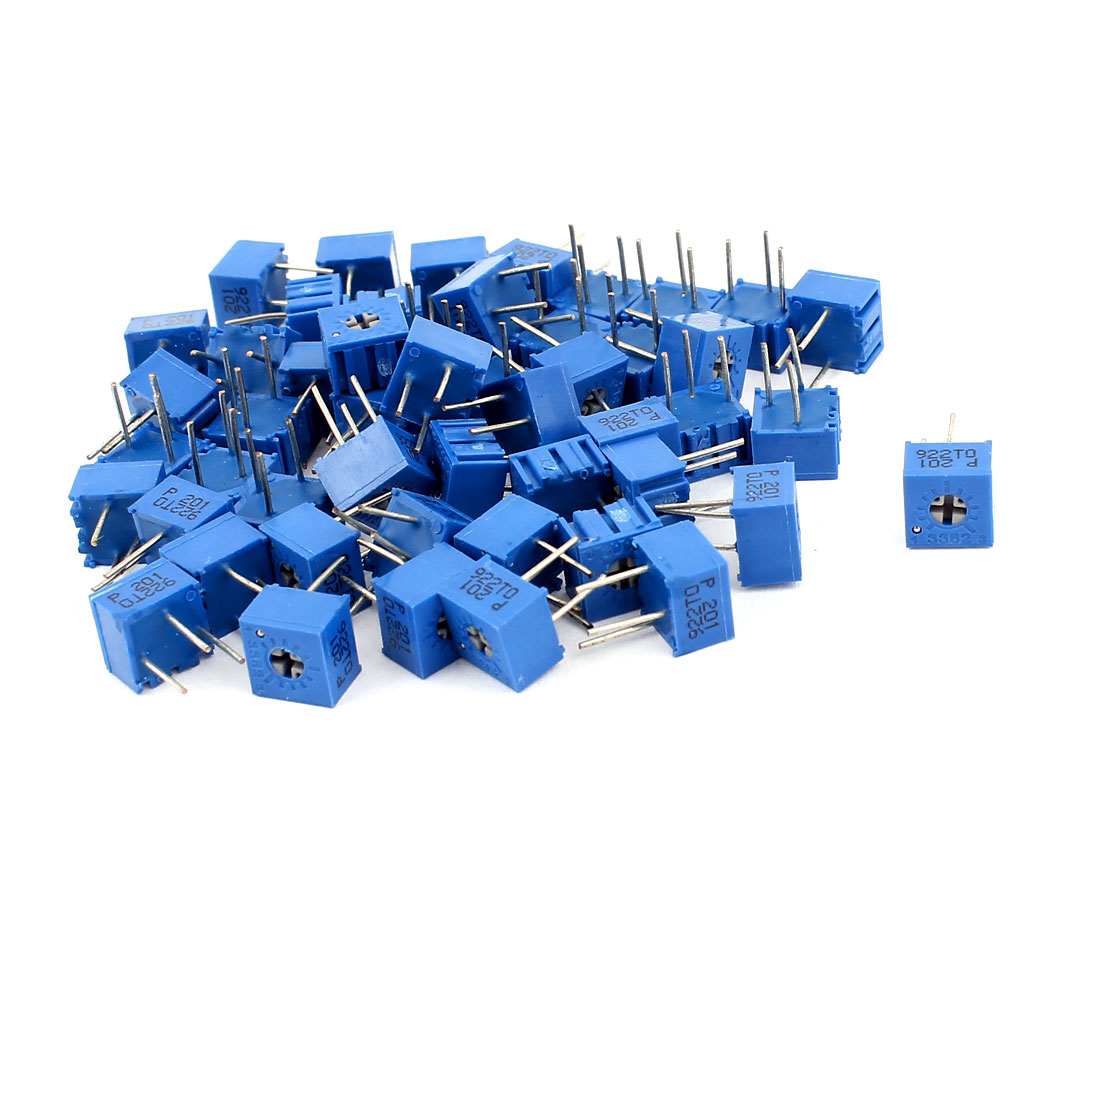 50Pcs Adjustable Potentiometer Trimmer Variable Resistor 3362P-104 100K Ohm